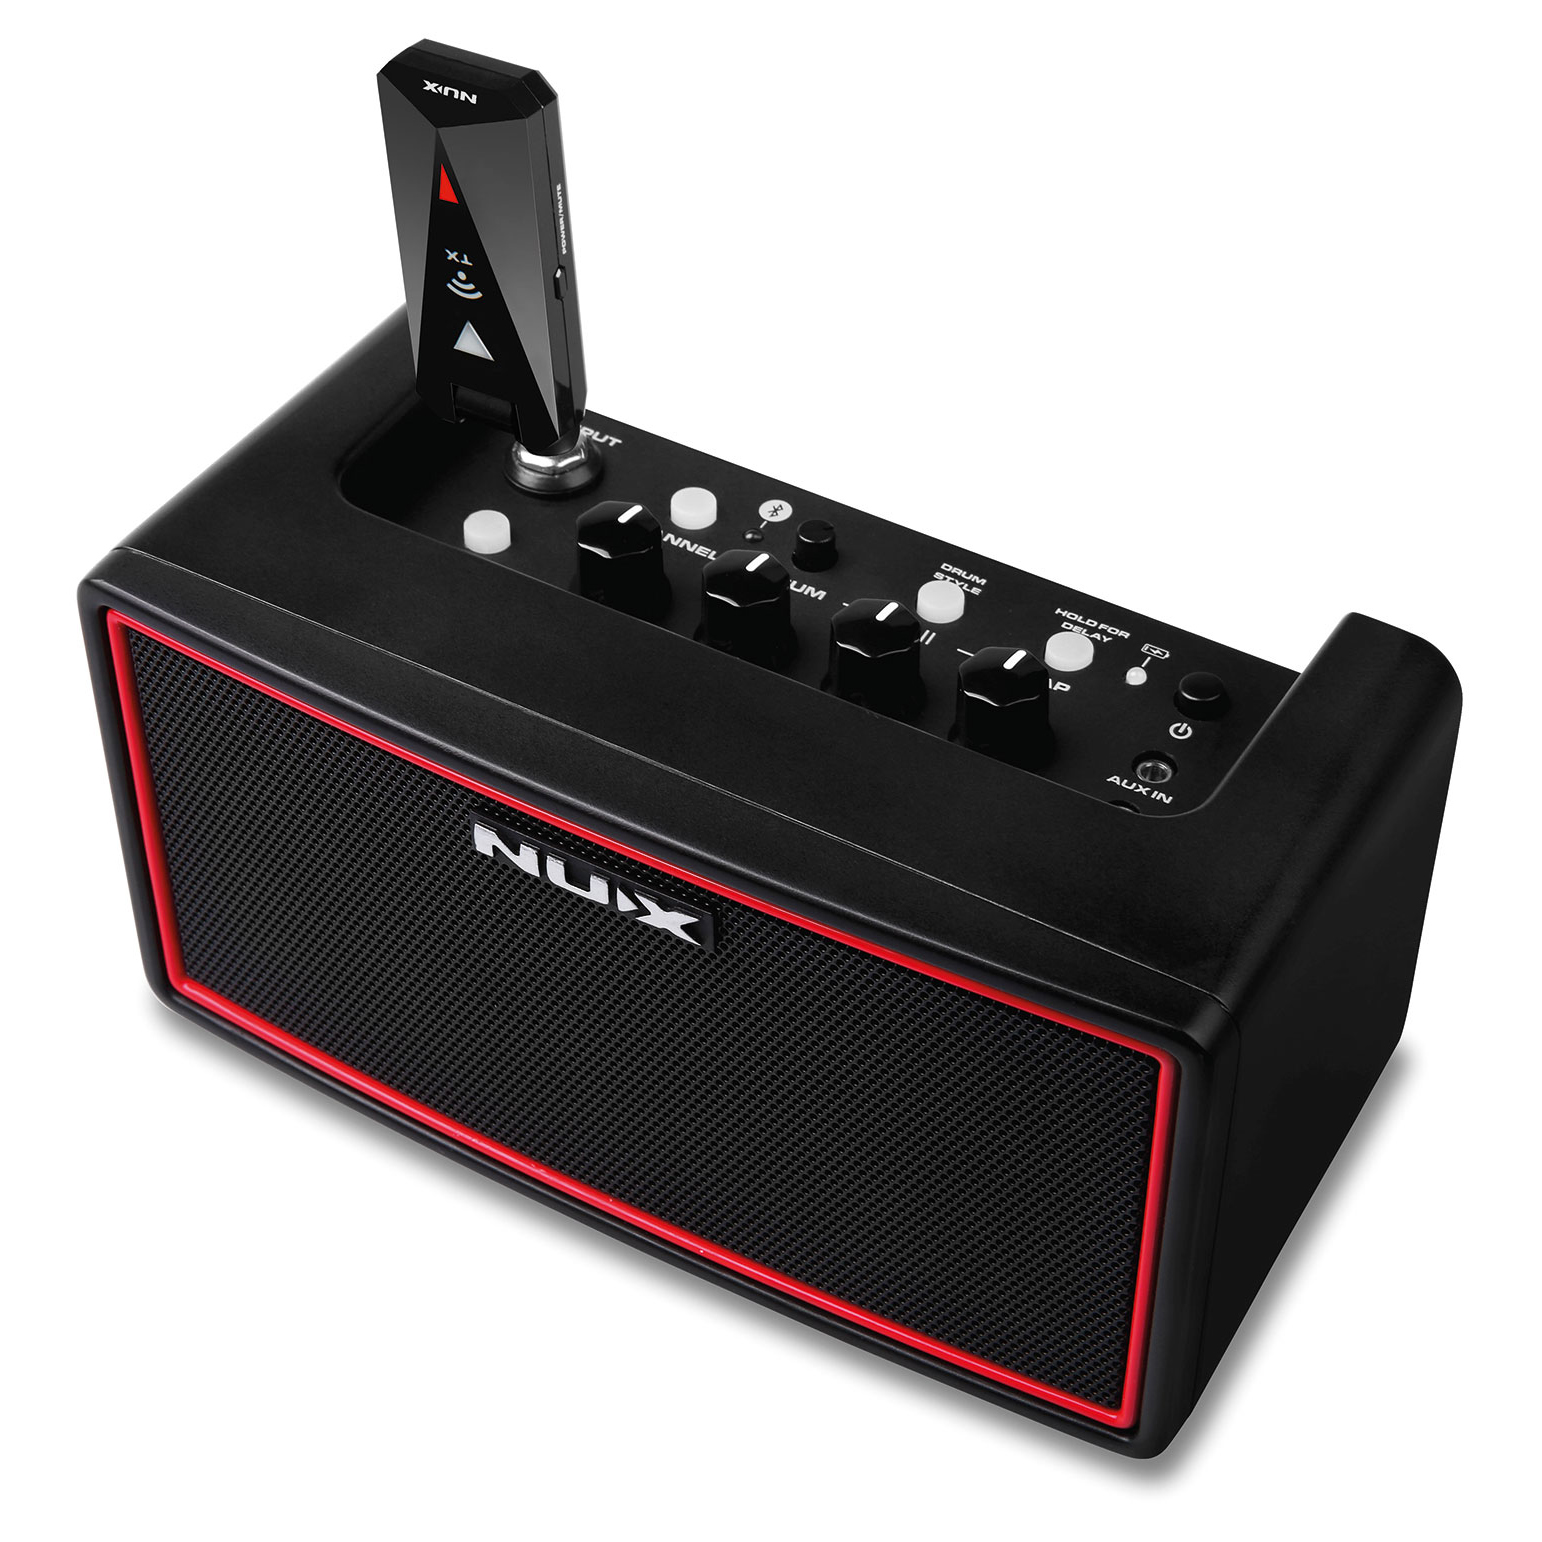 NuX Mighty Air guitar amplifier - Sound Services